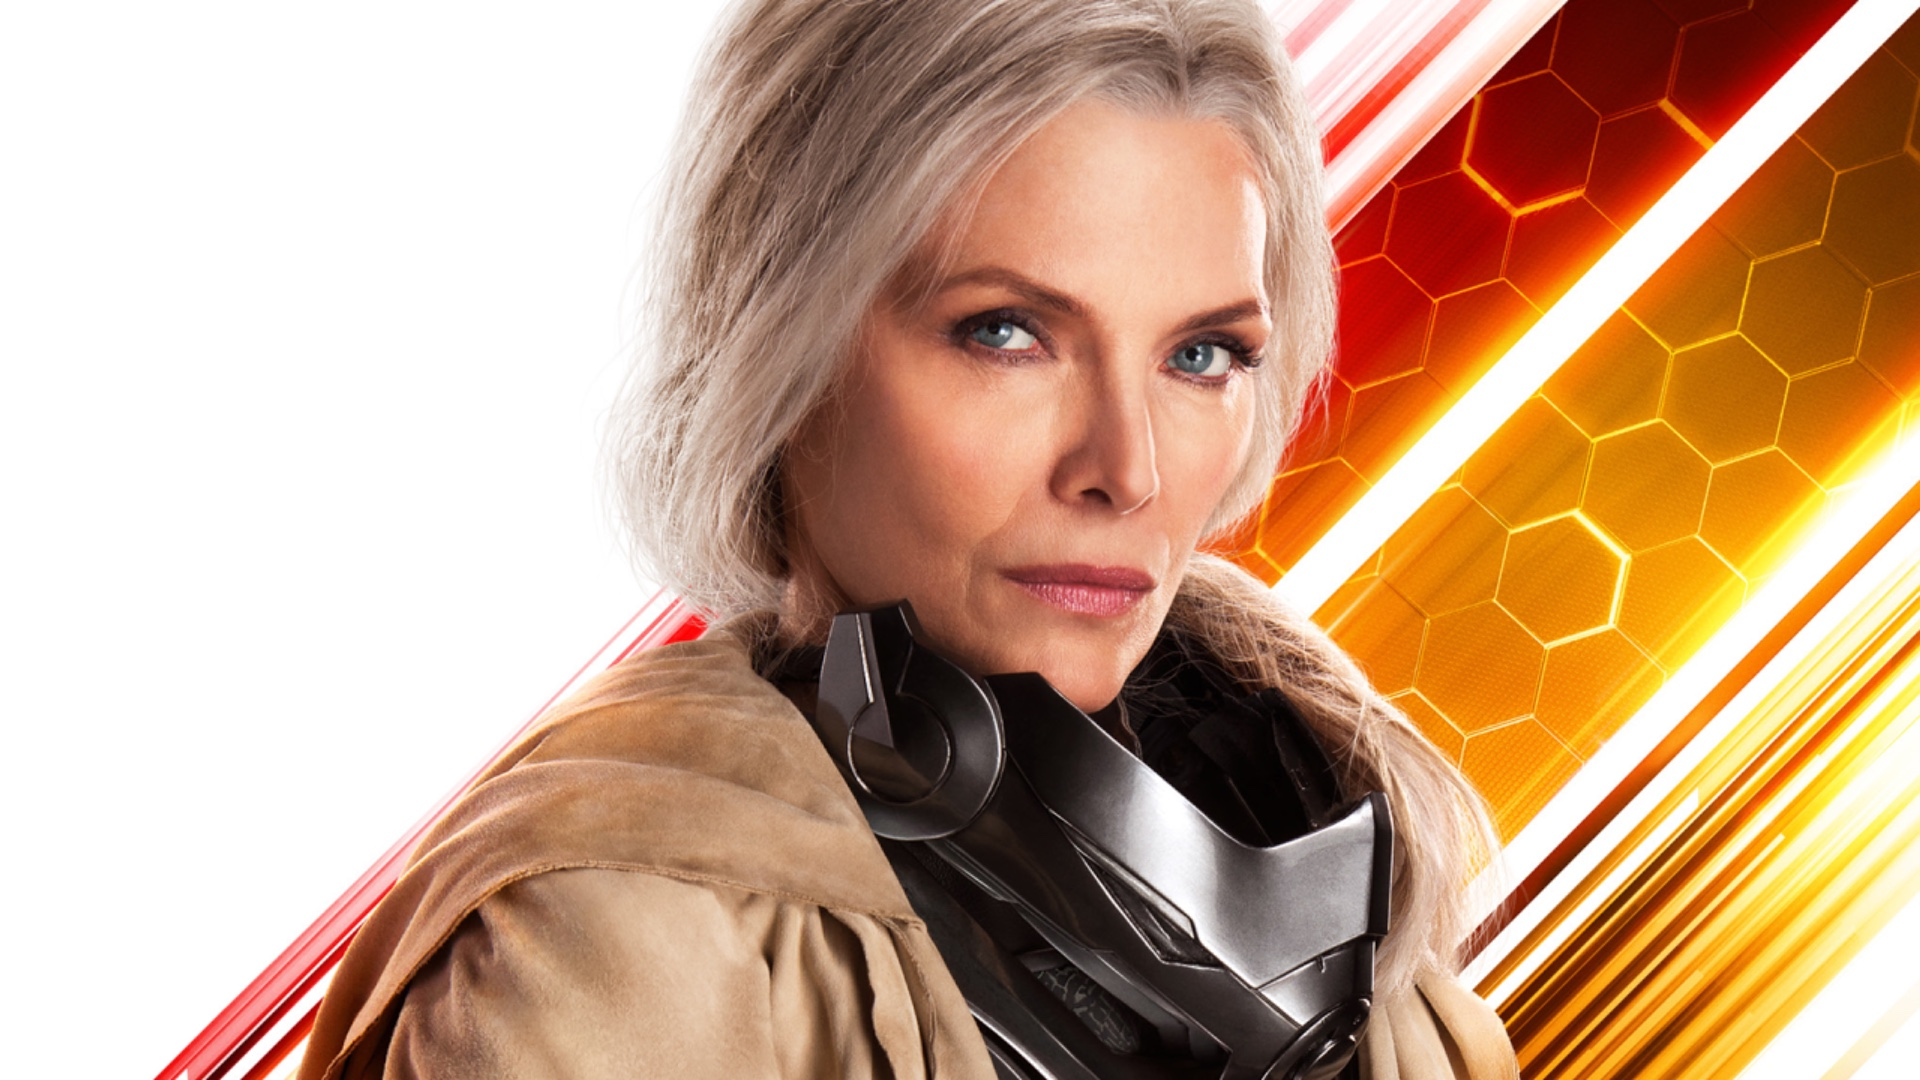 payton-read-discusses-the-challenge-of-getting-michelle-pfeiffer-in-ant-man-and-the-wasp-and-also-teases-ant-man-3-plans-social.jpg